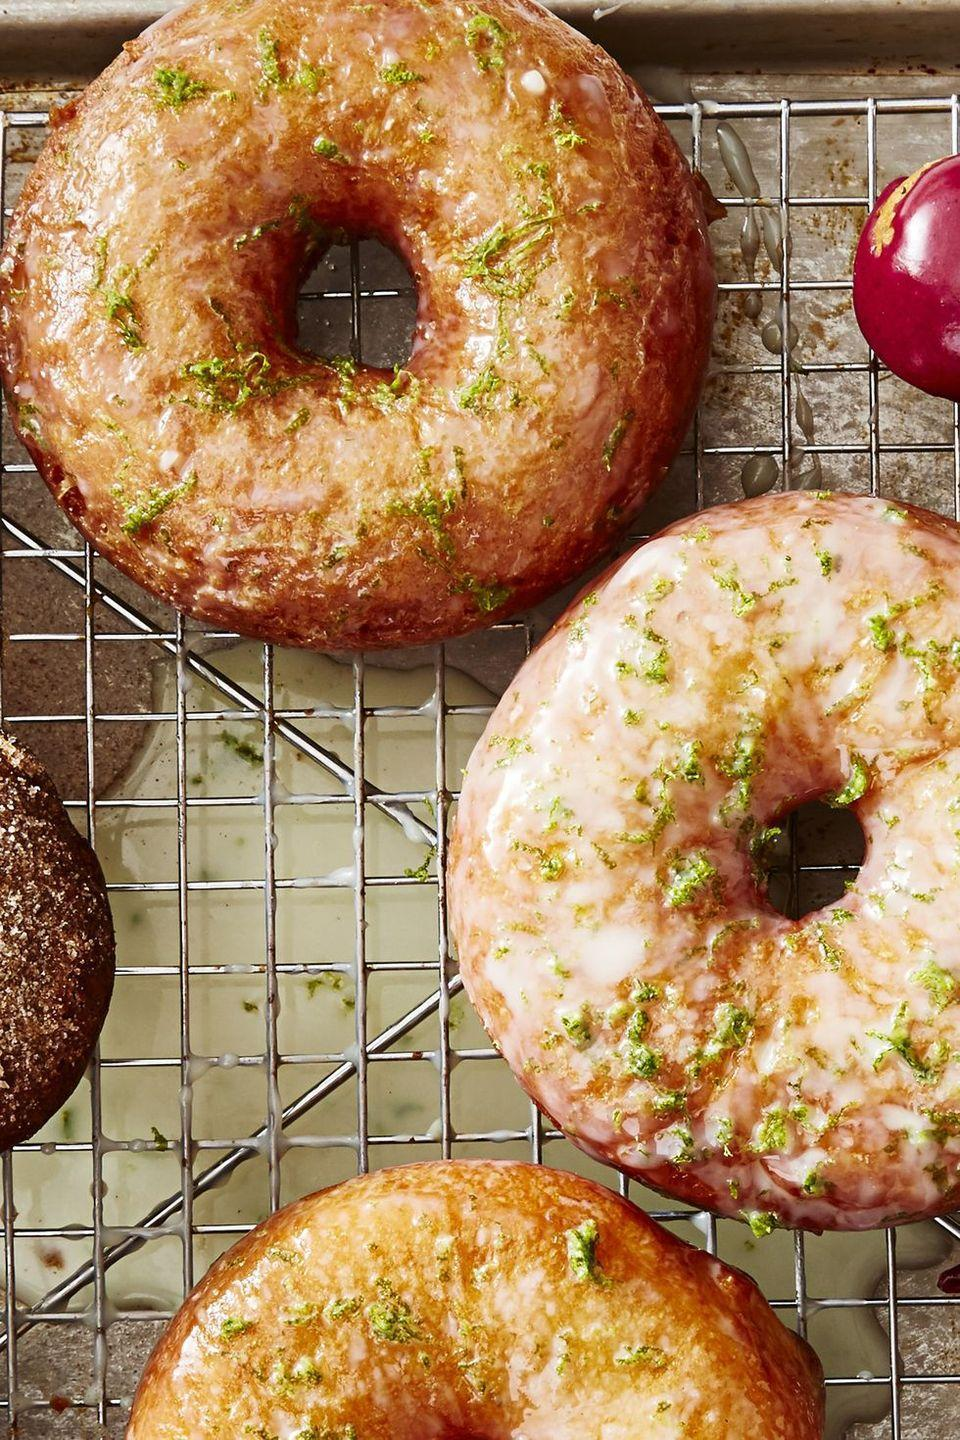 """<p>These sweet and tangy glazed donuts give you the flavor of summer, right around the corner.</p><p><em><a href=""""https://www.goodhousekeeping.com/food-recipes/a48182/coconut-lime-donuts-recipe/"""" rel=""""nofollow noopener"""" target=""""_blank"""" data-ylk=""""slk:Get the recipe for Coconut-Lime Donuts »"""" class=""""link rapid-noclick-resp"""">Get the recipe for Coconut-Lime Donuts »</a></em></p>"""